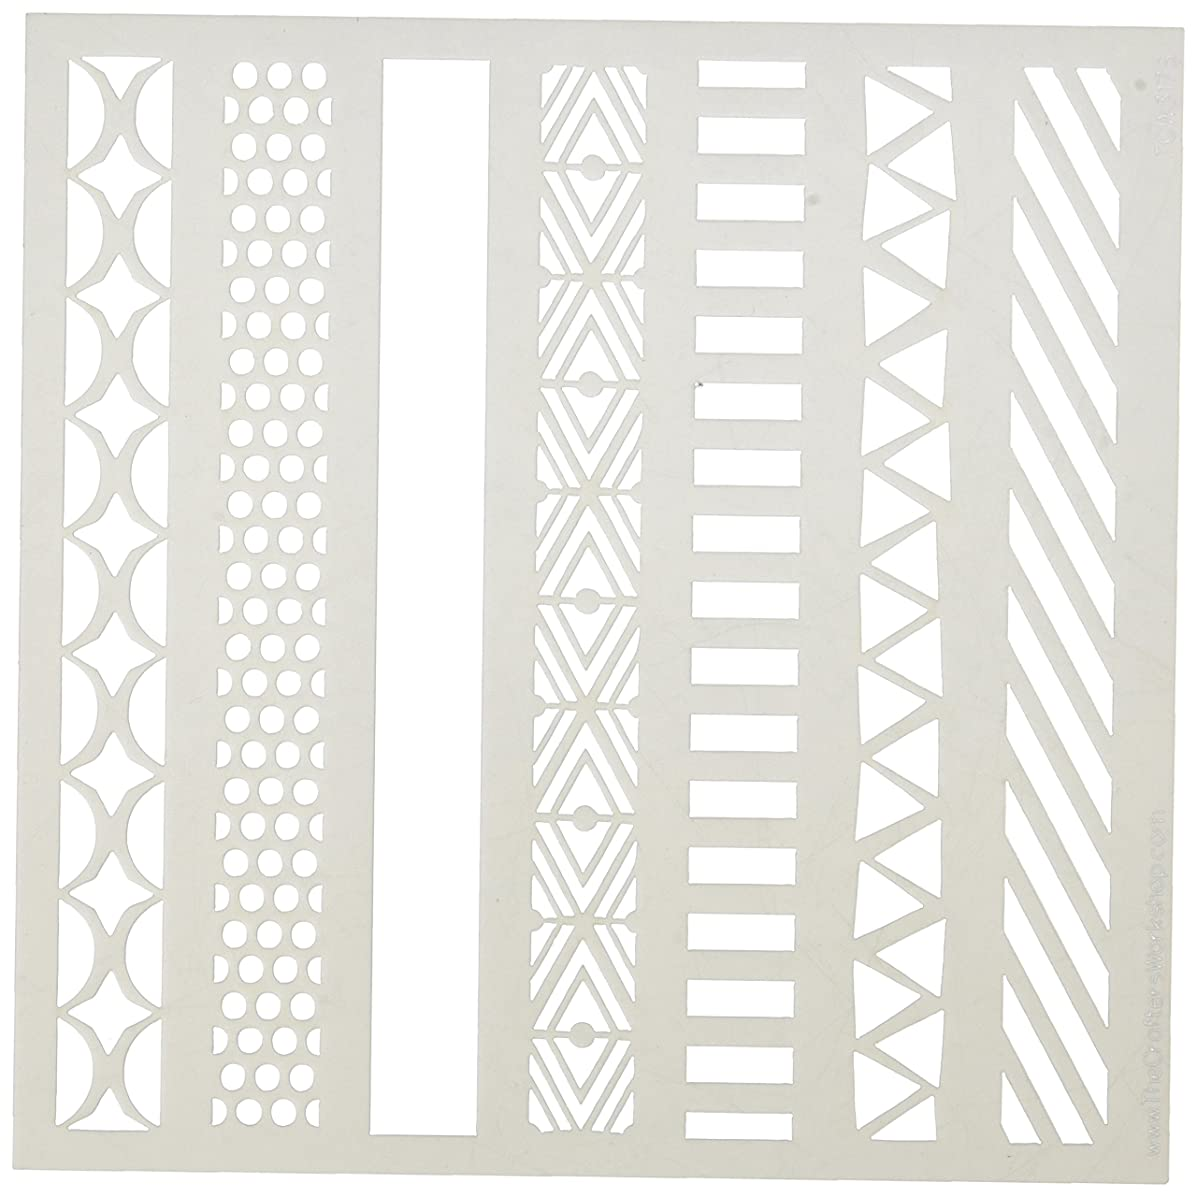 CRAFTERS WORKSHOP The TCW317S Stencil 6x6 Pattern Strips Stencil 6x6 Pattern Strips